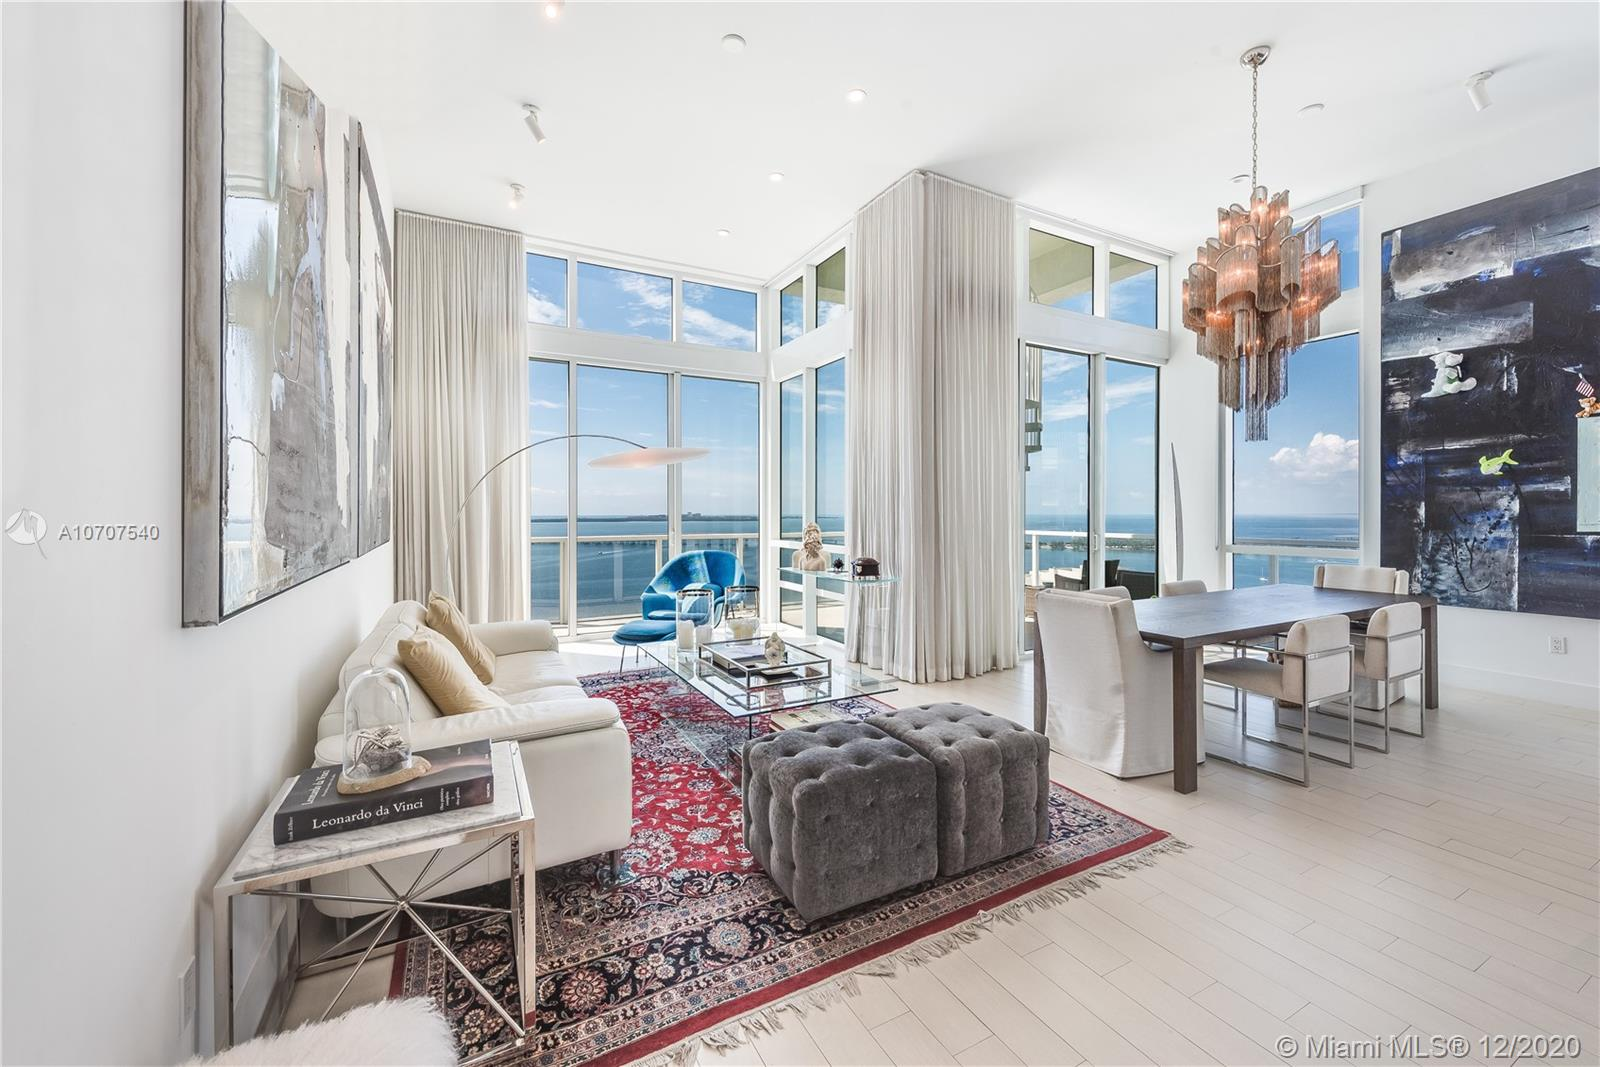 Stunning unobstructed views of Biscayne Bay and Key Biscayne from this custom 3 Bed/3.5 bath penthouse with a private roof top terrace. This property features high ceilings, floor to ceiling sliding glass doors, marble floors throughout, upgraded European kitchen with cooking island and subzero refrigerator, spacious master suite, and walk-in closets. The building offers 24-hour concierge/security service, a rooftop infinity pool, gym and spa with awe-inspiring views of the ocean.